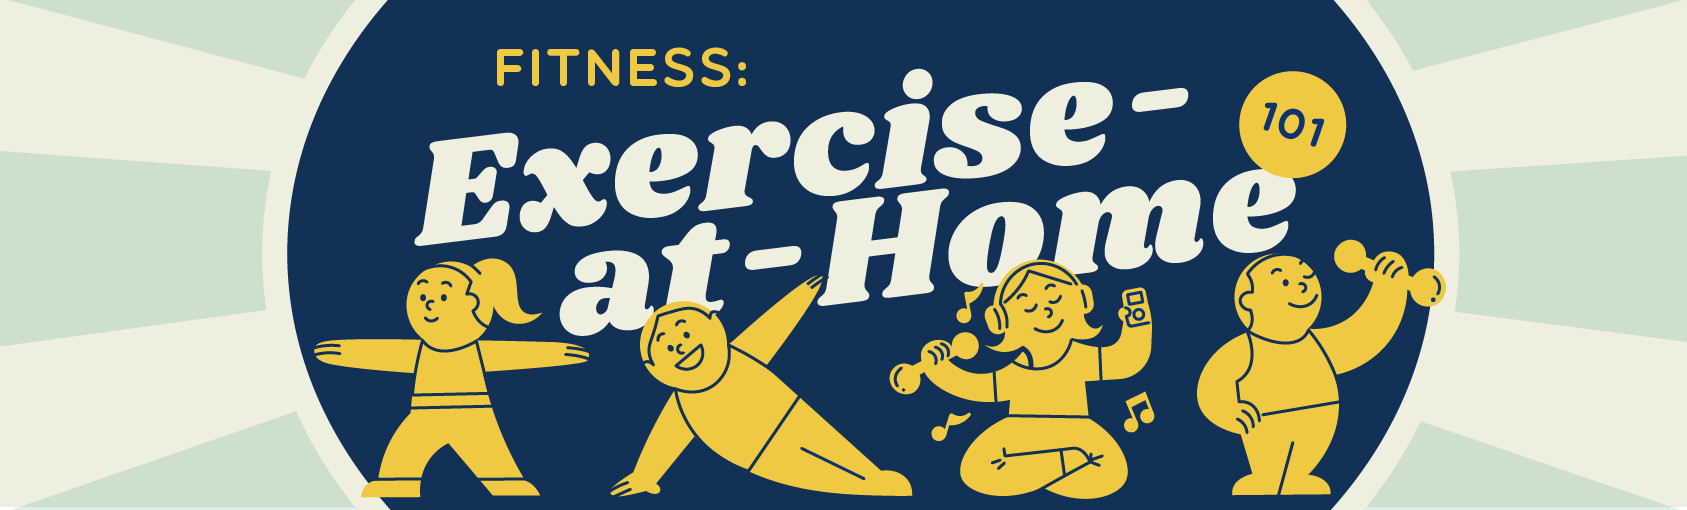 Fitness: Exercise-At-Home 101 banner